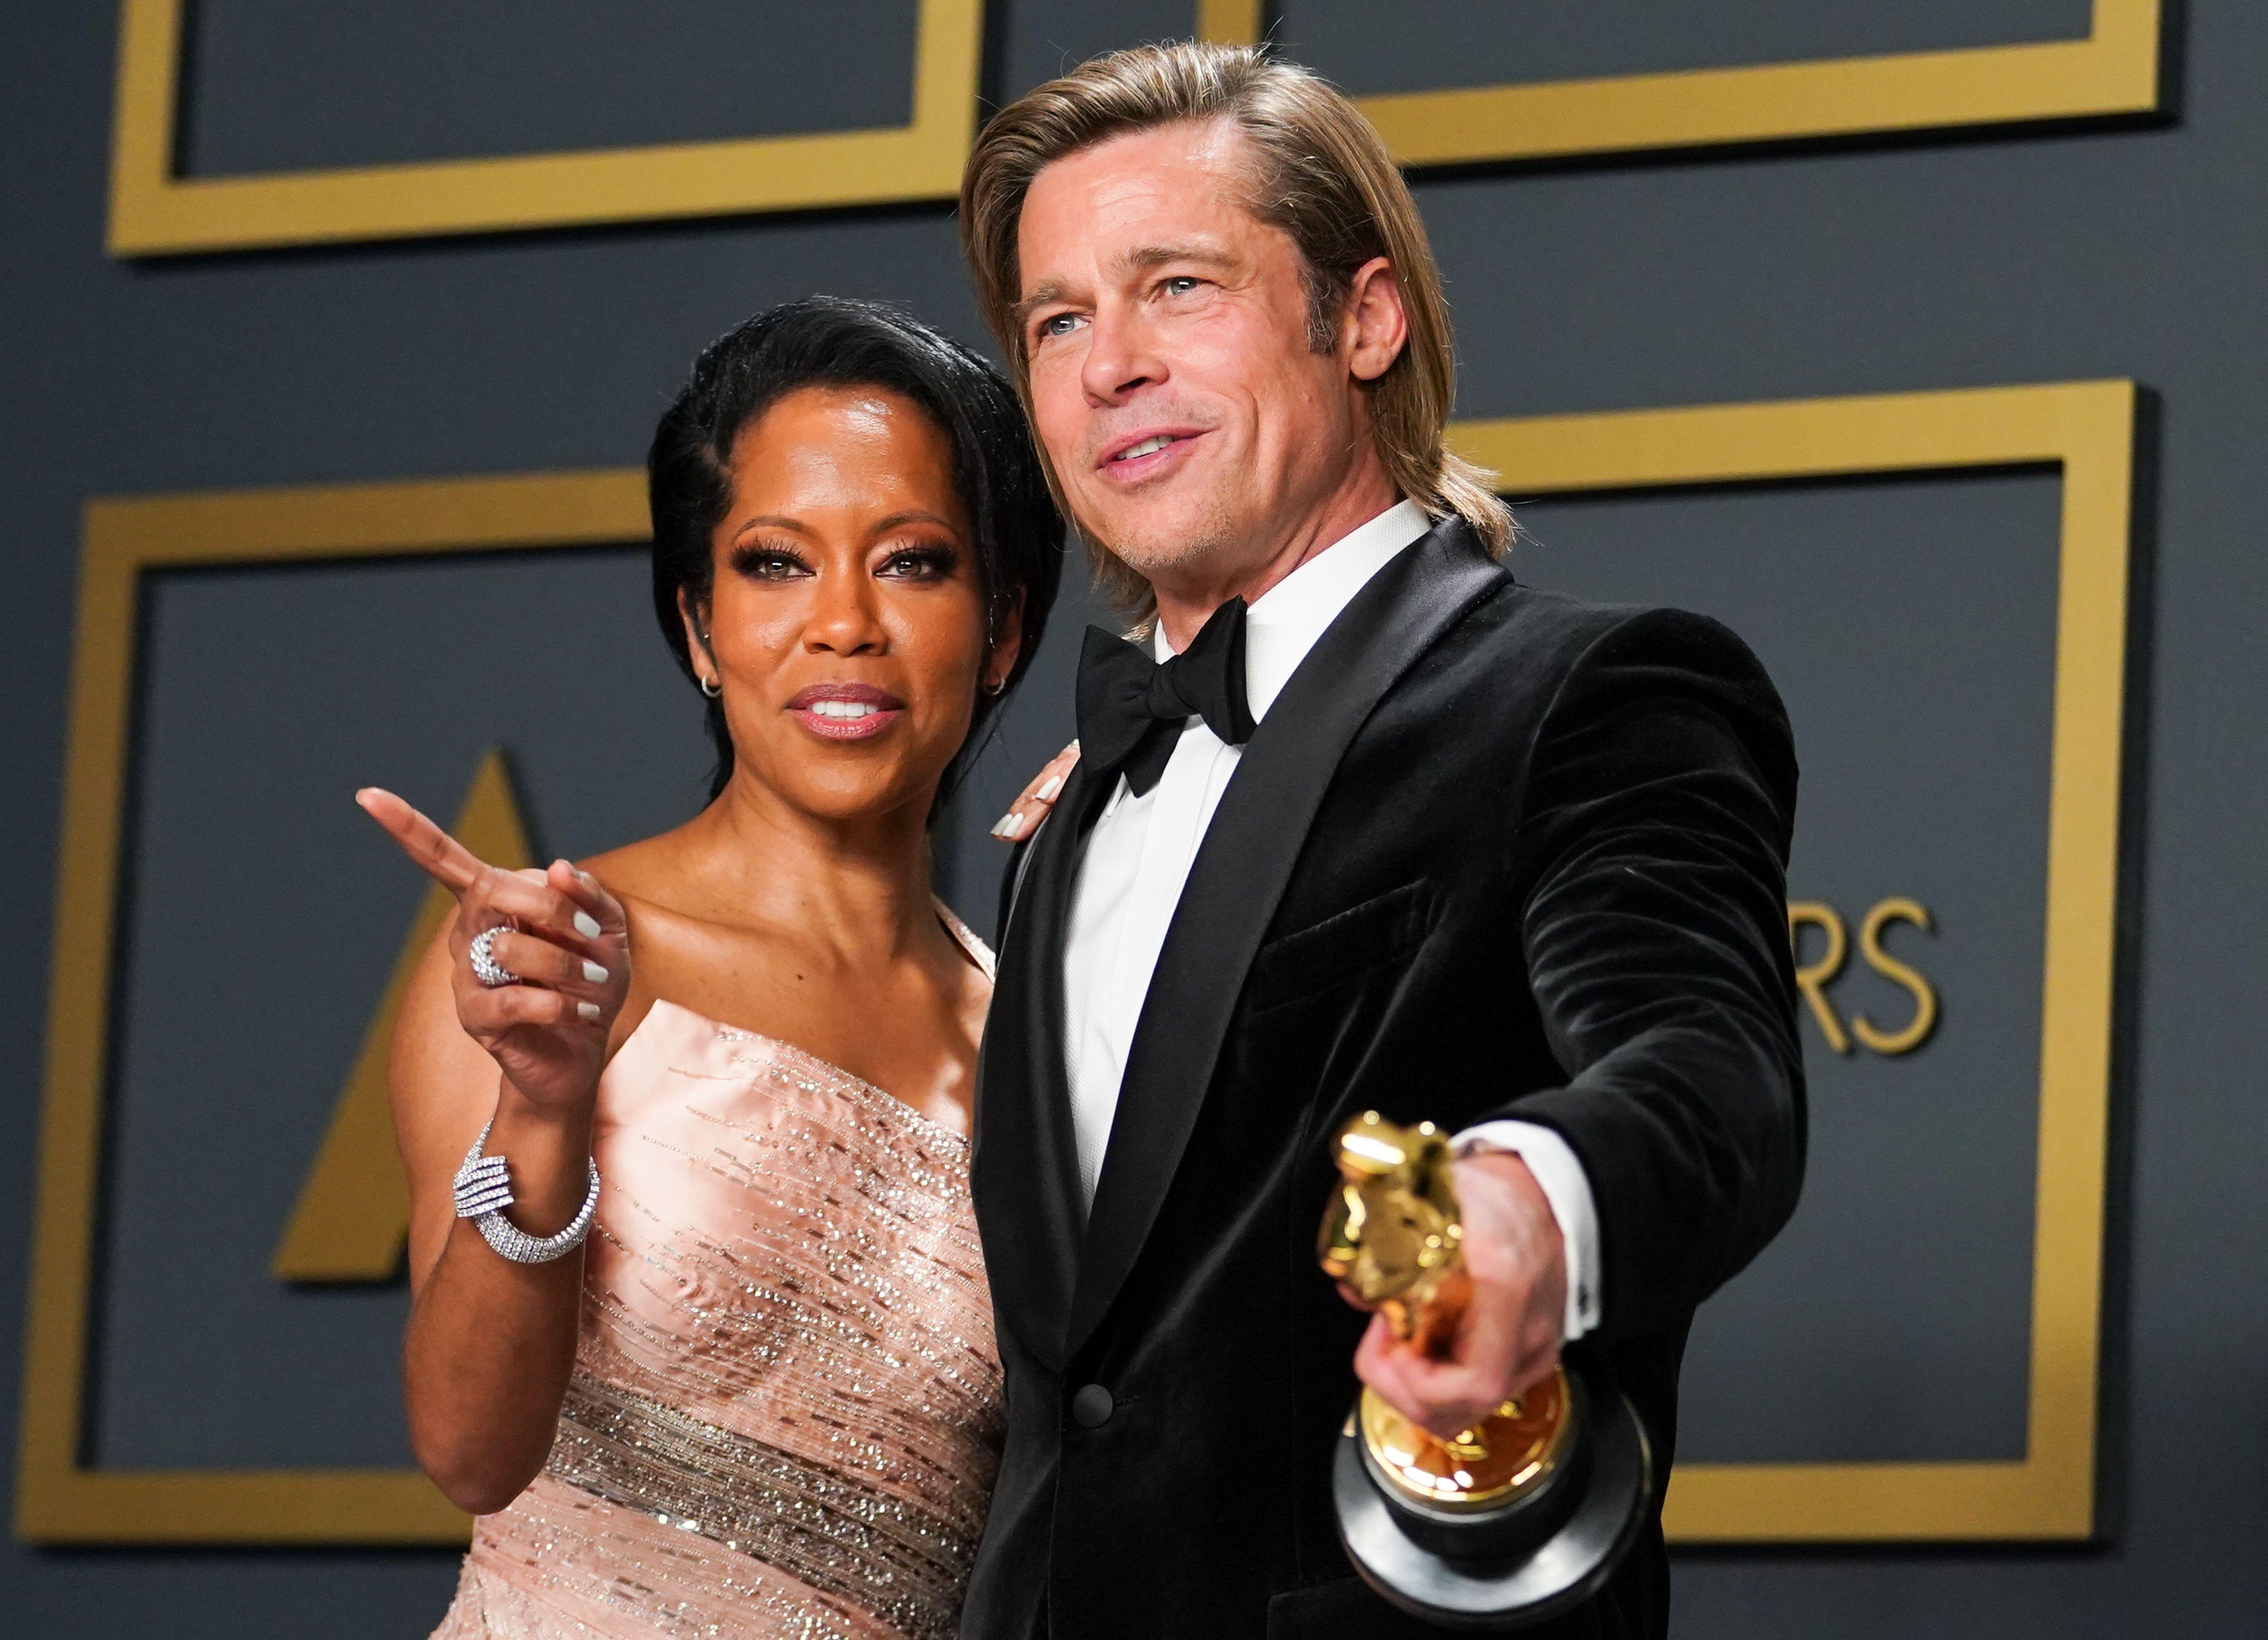 See Pictures Of Brad Pitt And Regina King At The 2020 Oscars